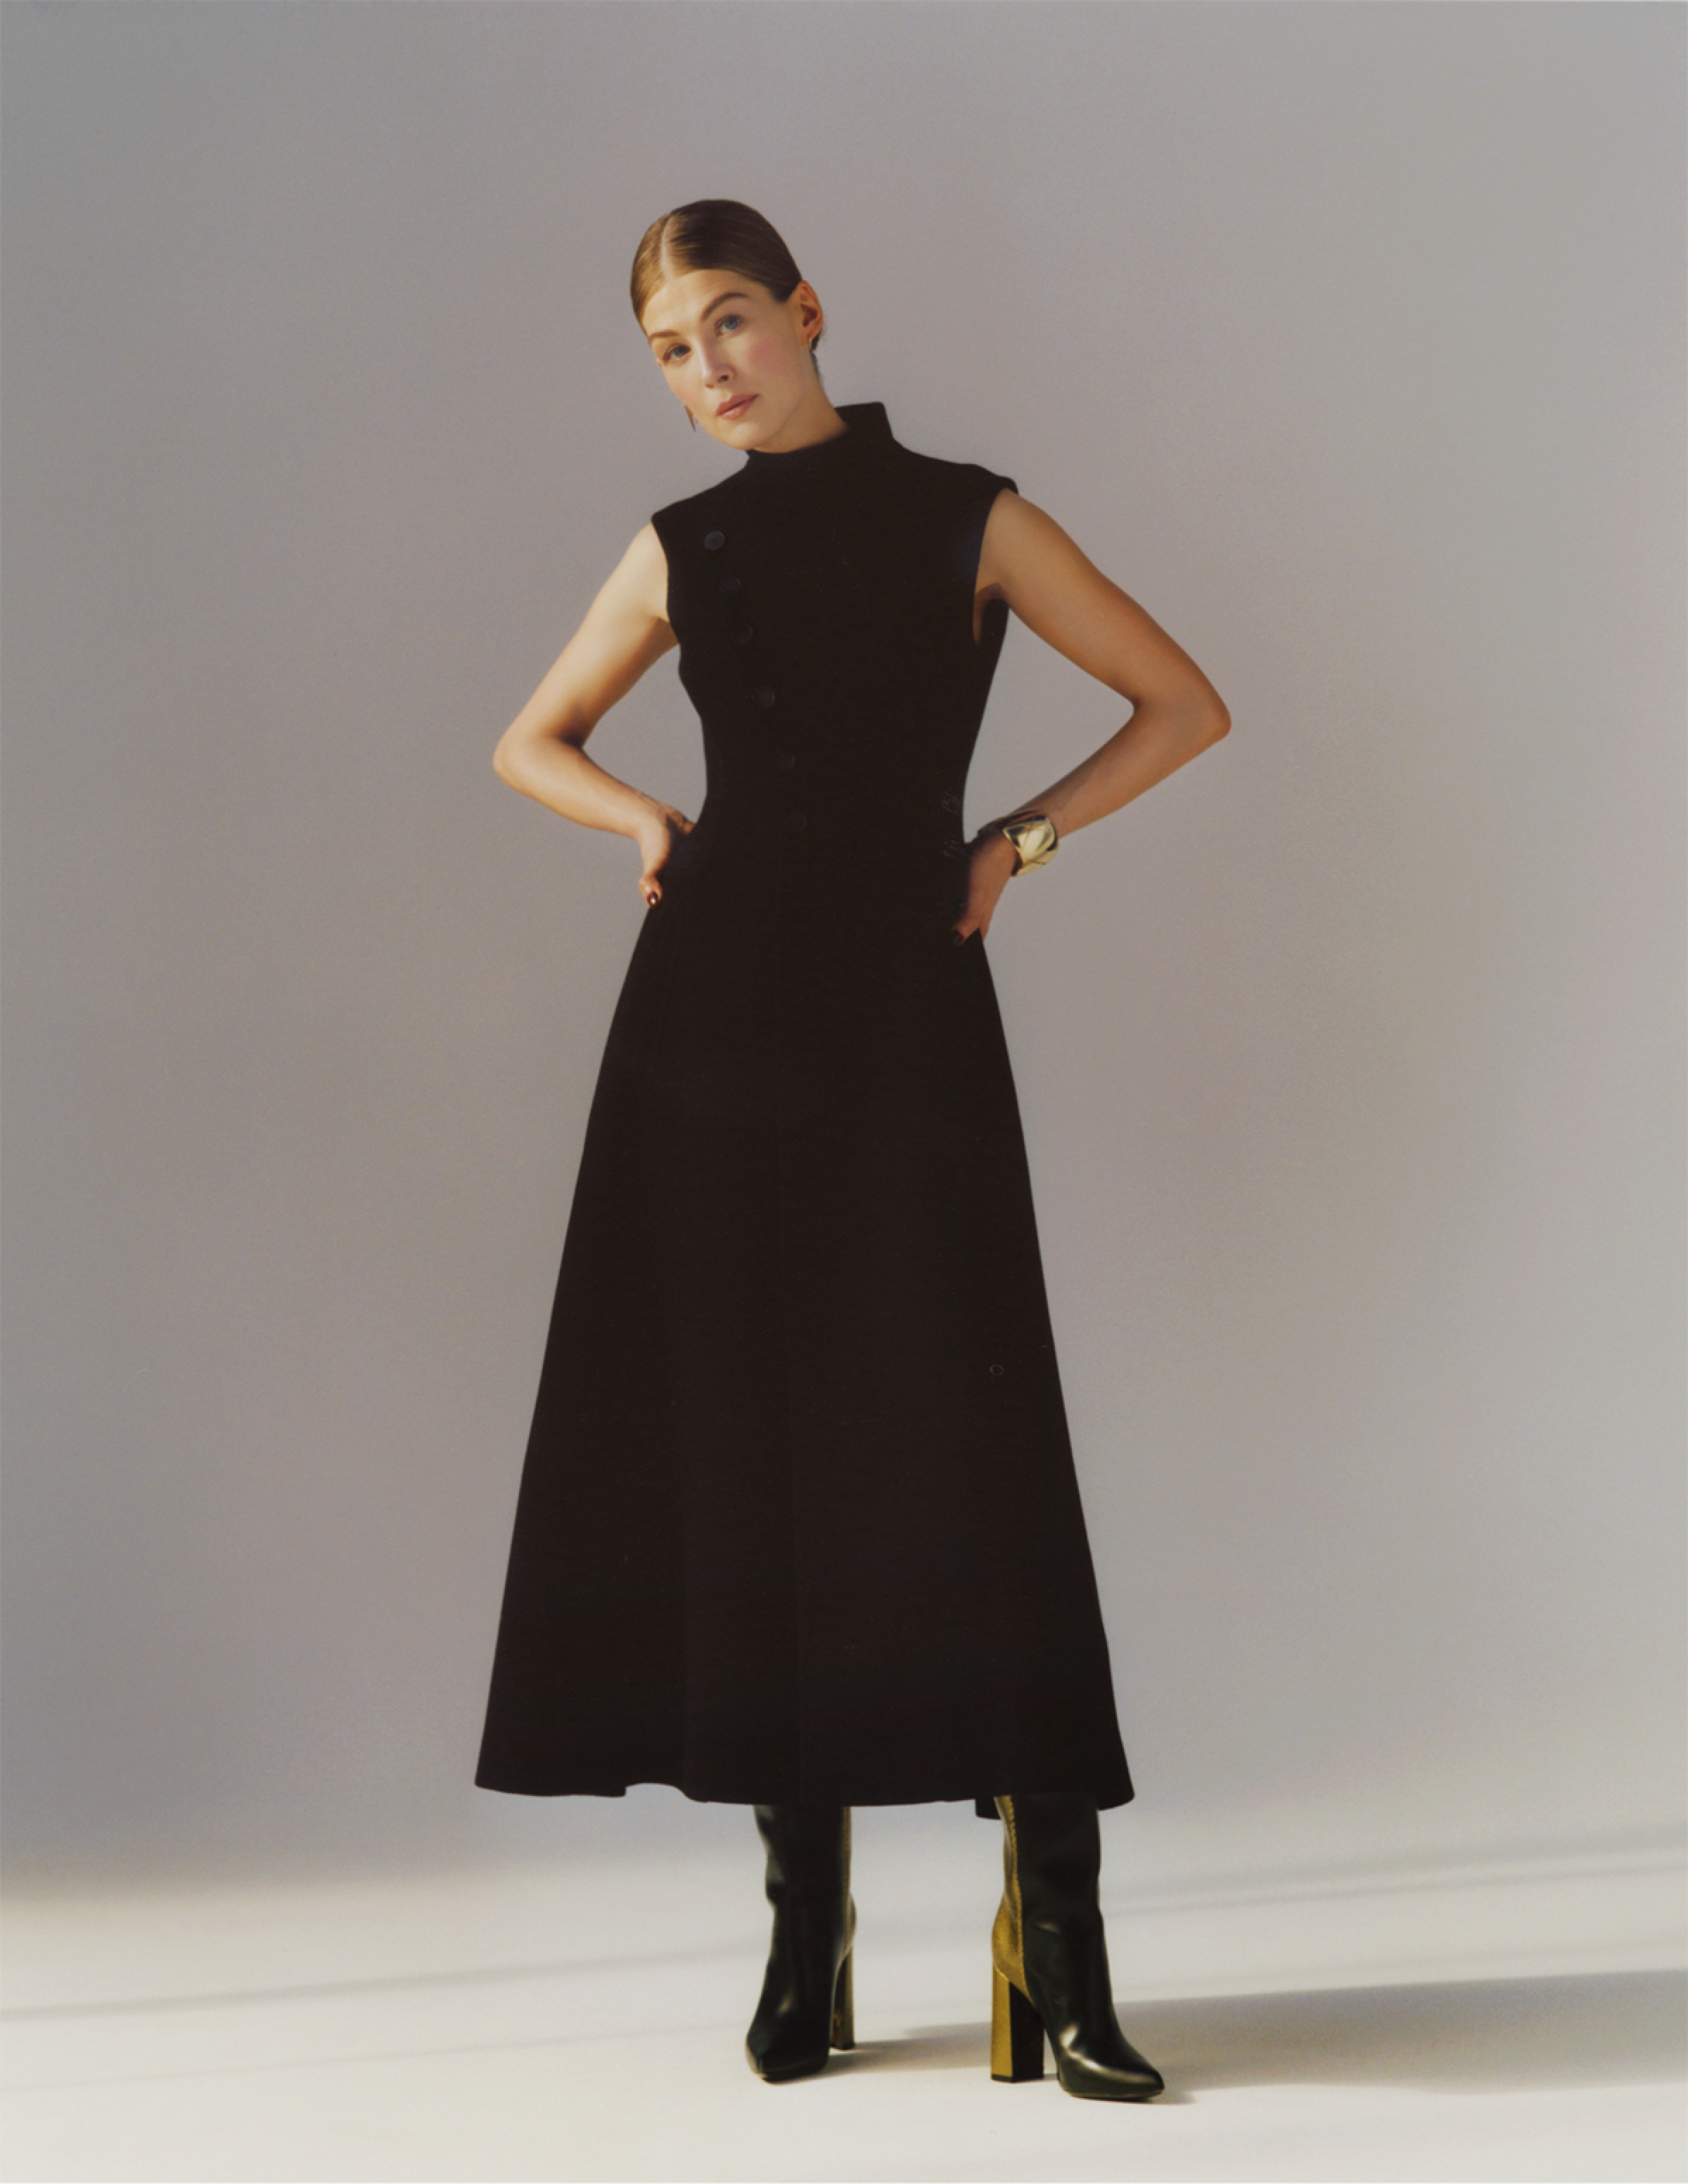 Rosamund Pike poses against a gray and white backdrop in a high-neck, long black dress and heeled black boots, her hands on her hips.